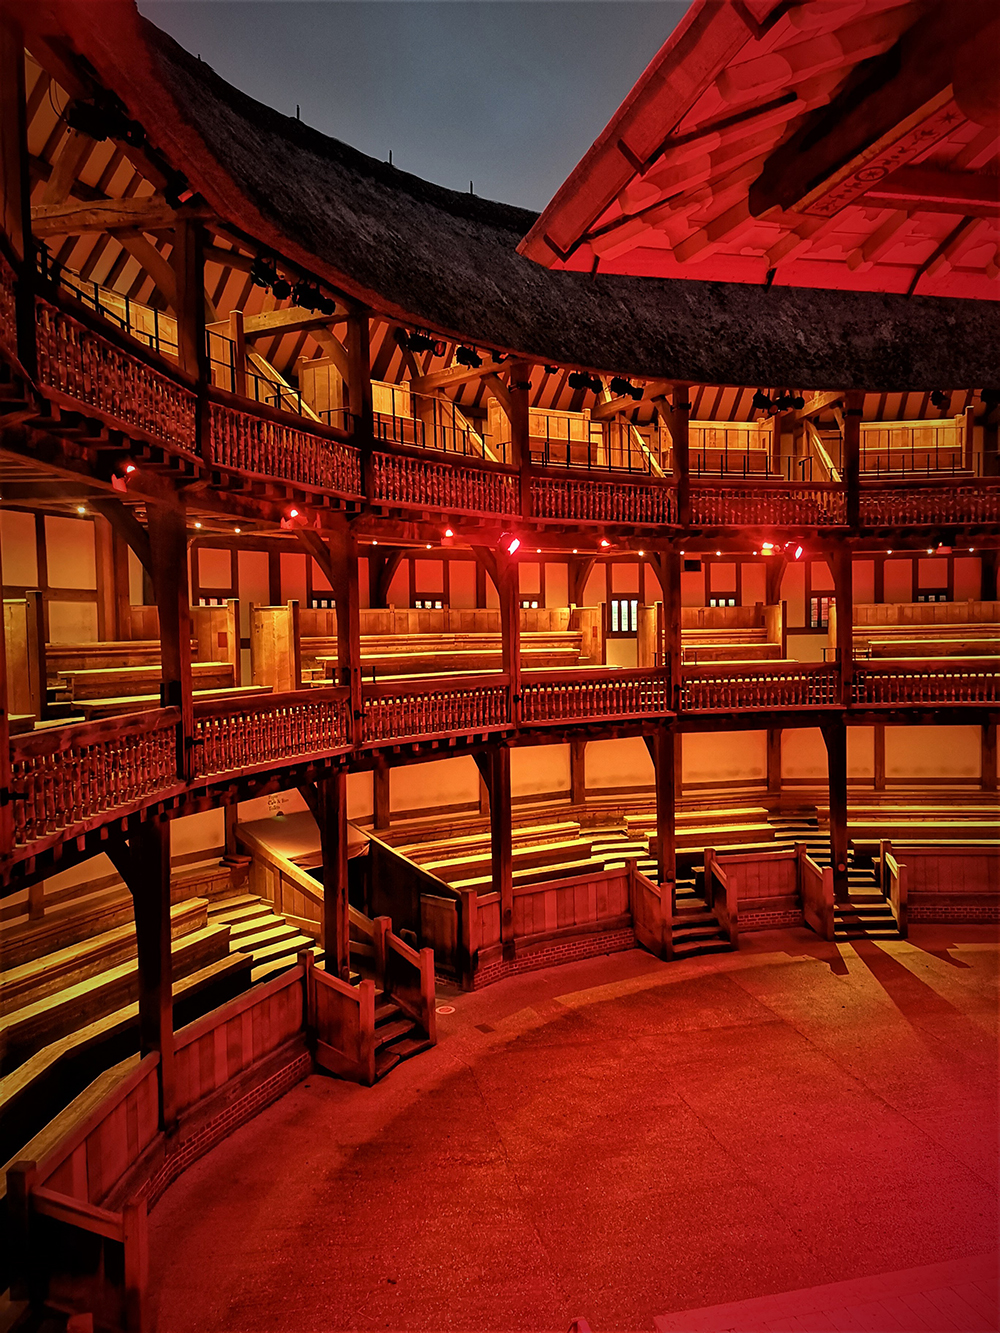 The inside galleries of the Globe Theatre are bathed in a red light.